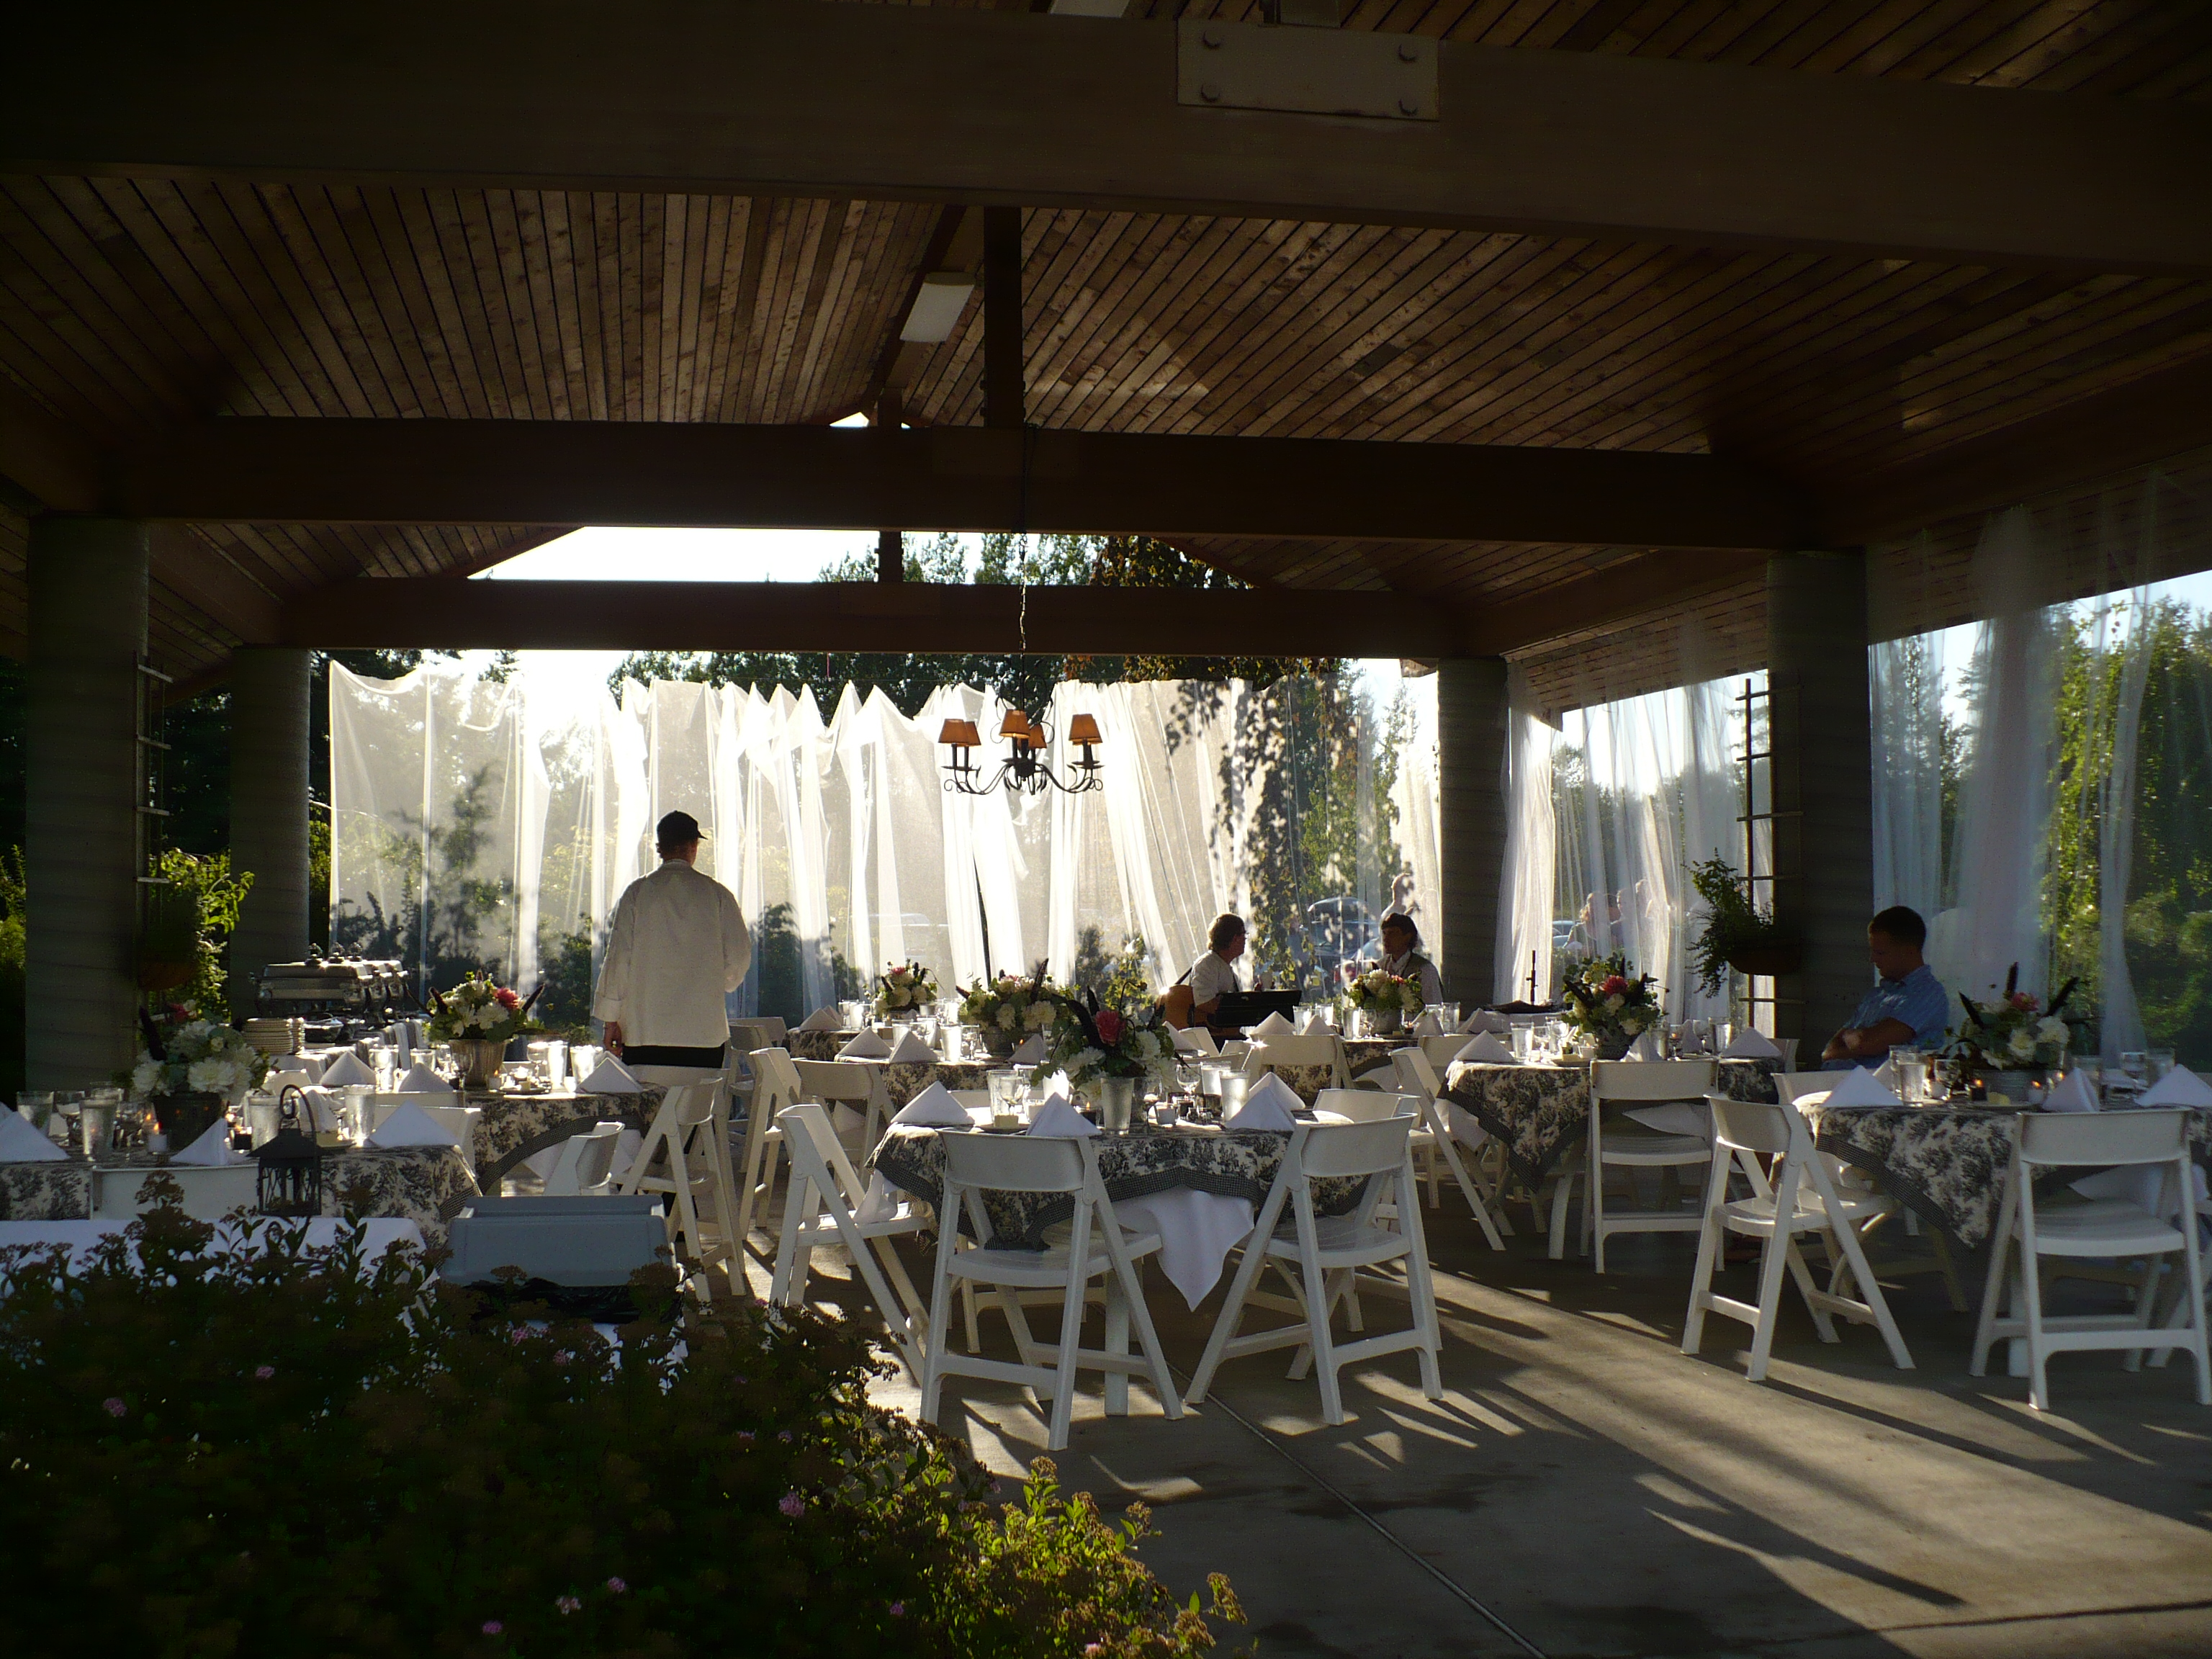 Shuksan clubhouse this venue with it 39 s outdoor bridal for Indoor outdoor wedding venues